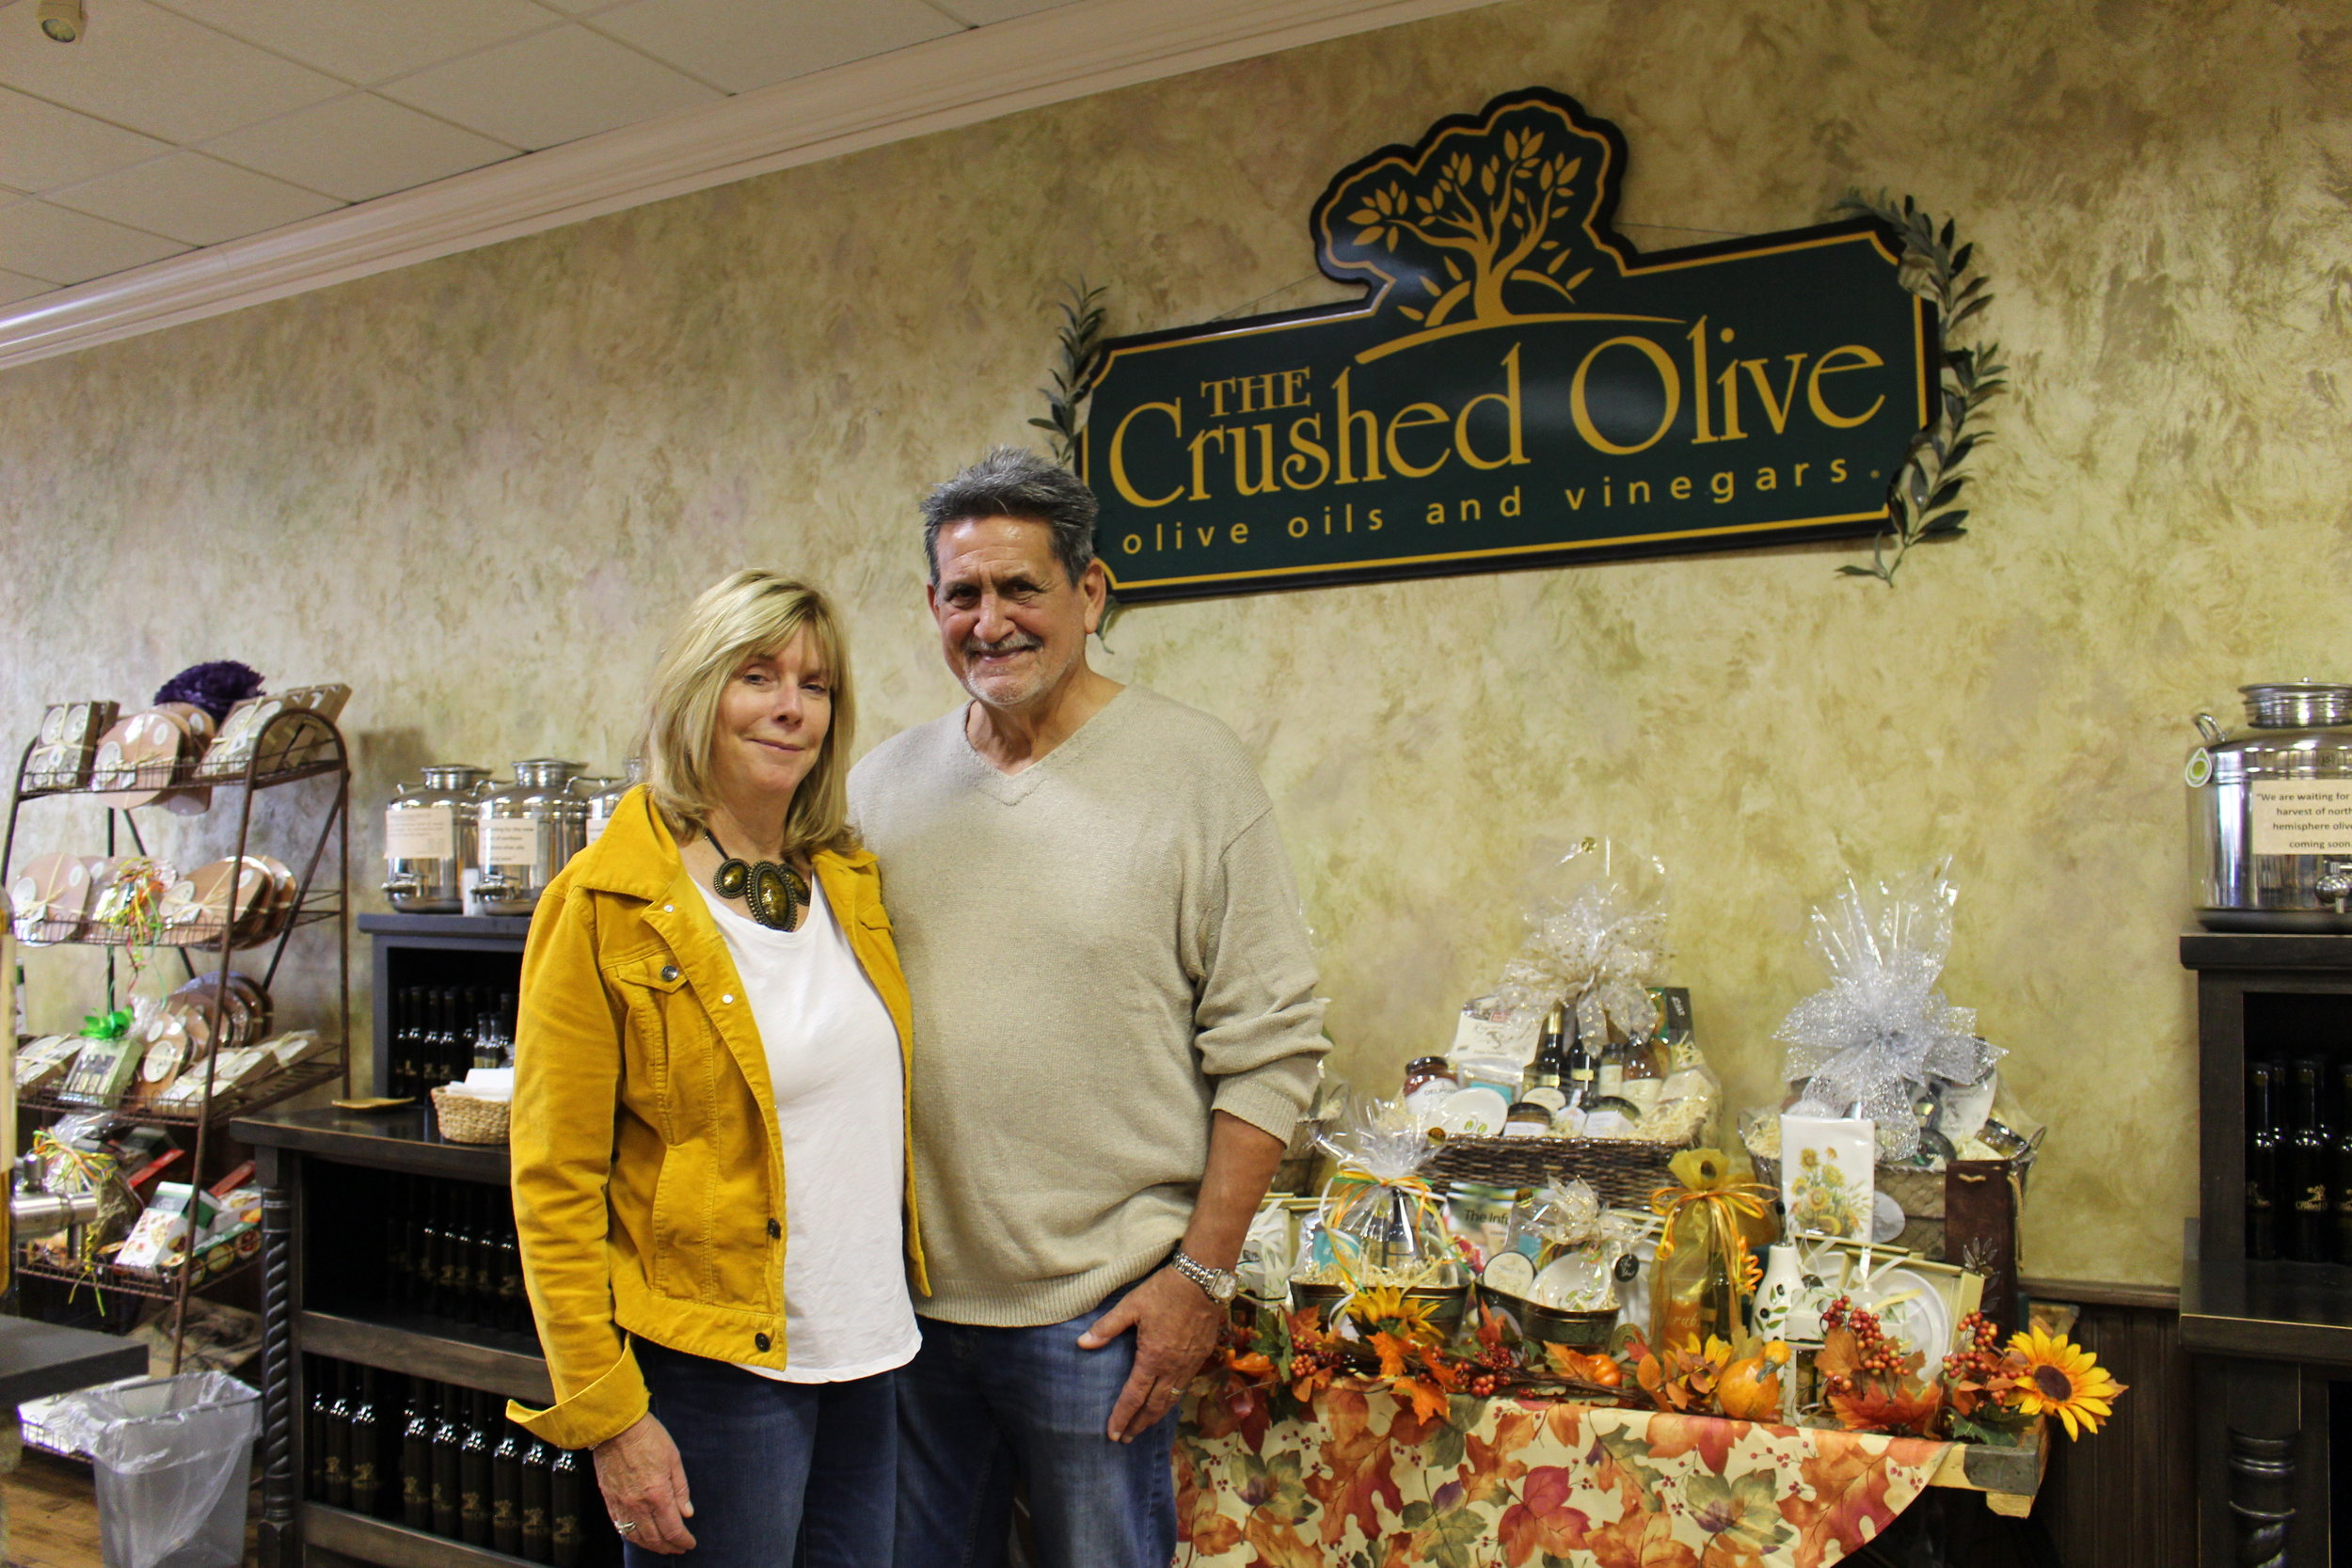 Mona and Bob Rossero, owners of The Crushed Olive, have been expanding their business on Long Island ever since they opened their Huntington location in 2011.